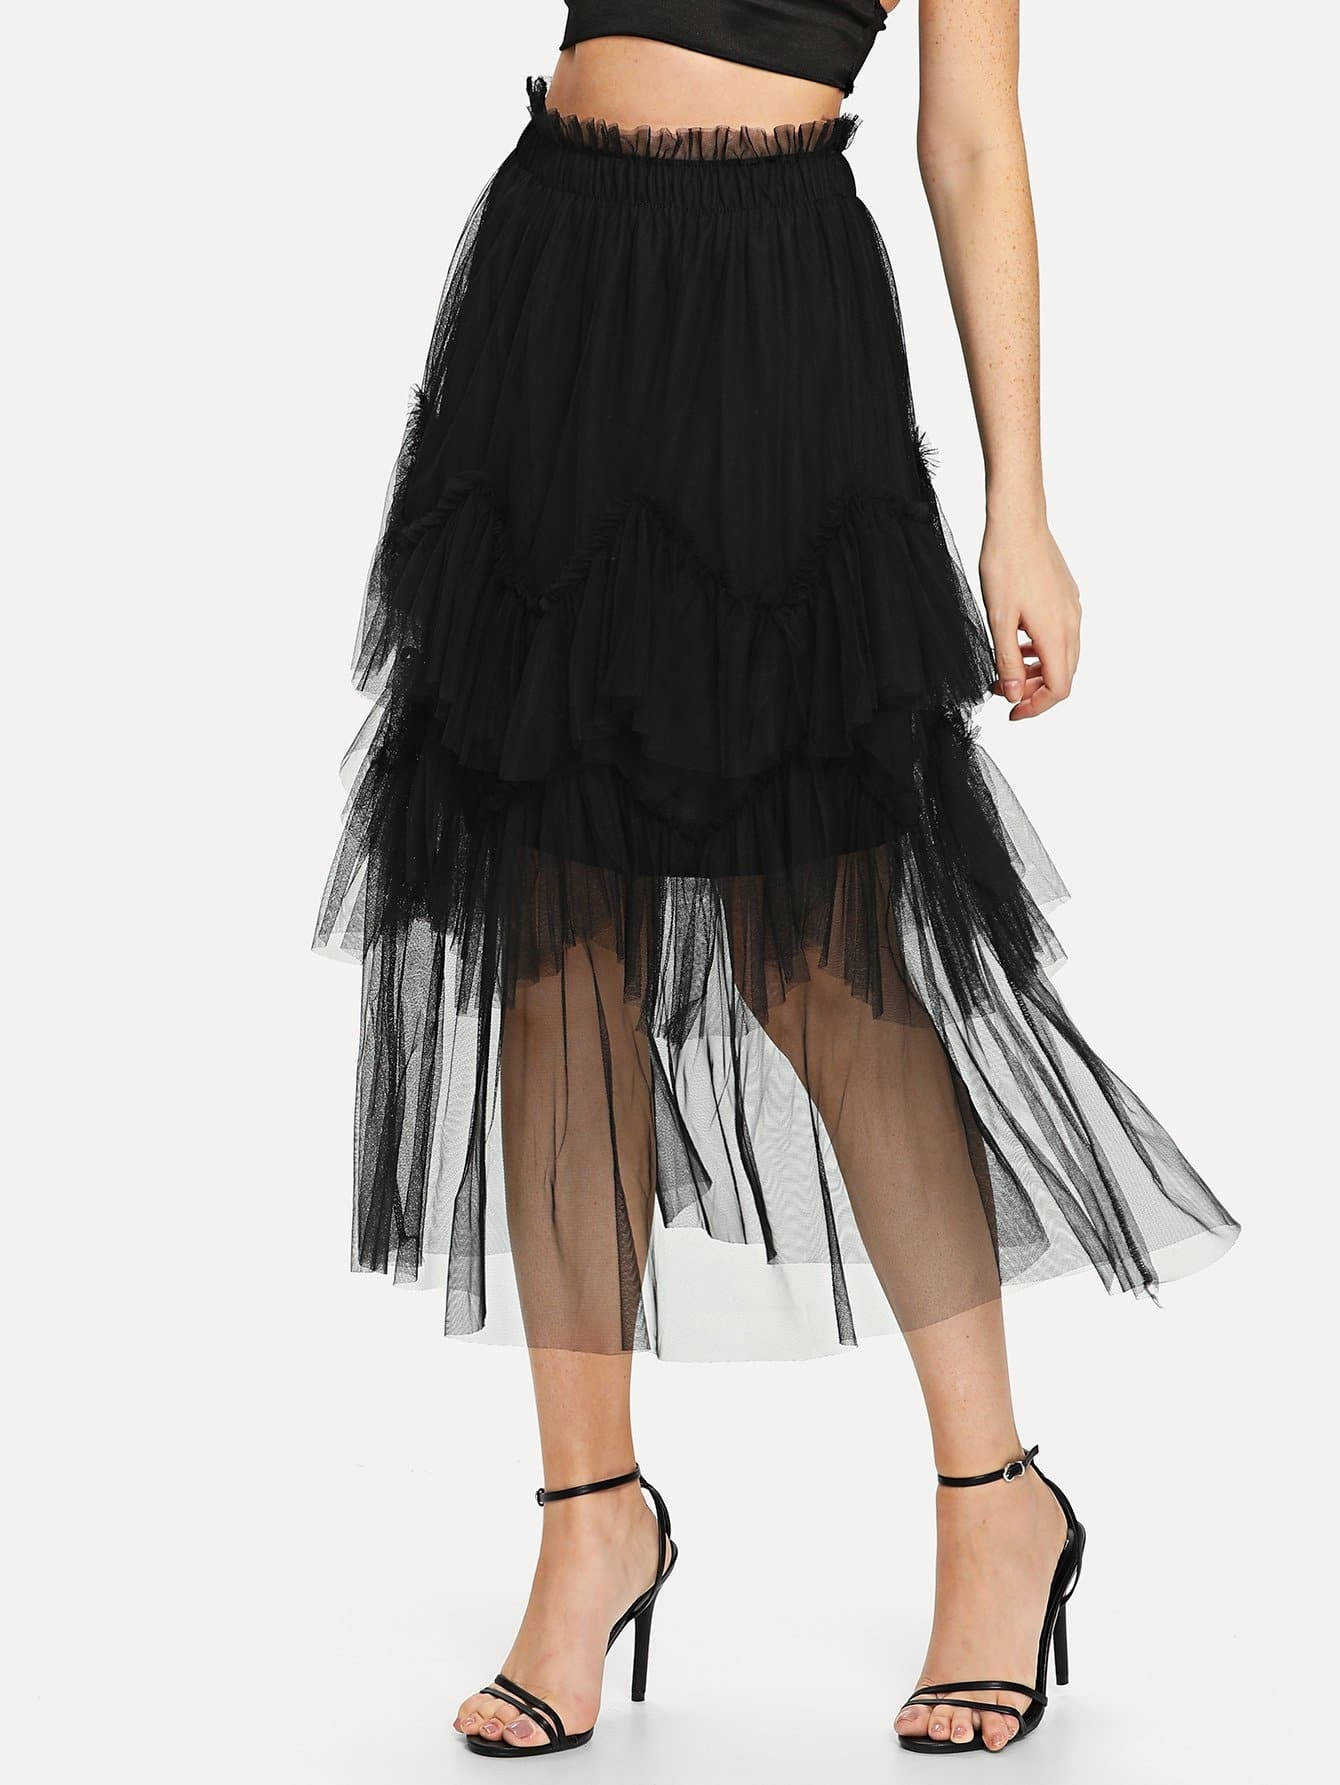 Layered Flounce Mesh Skirt flounce light up cosplay skirt